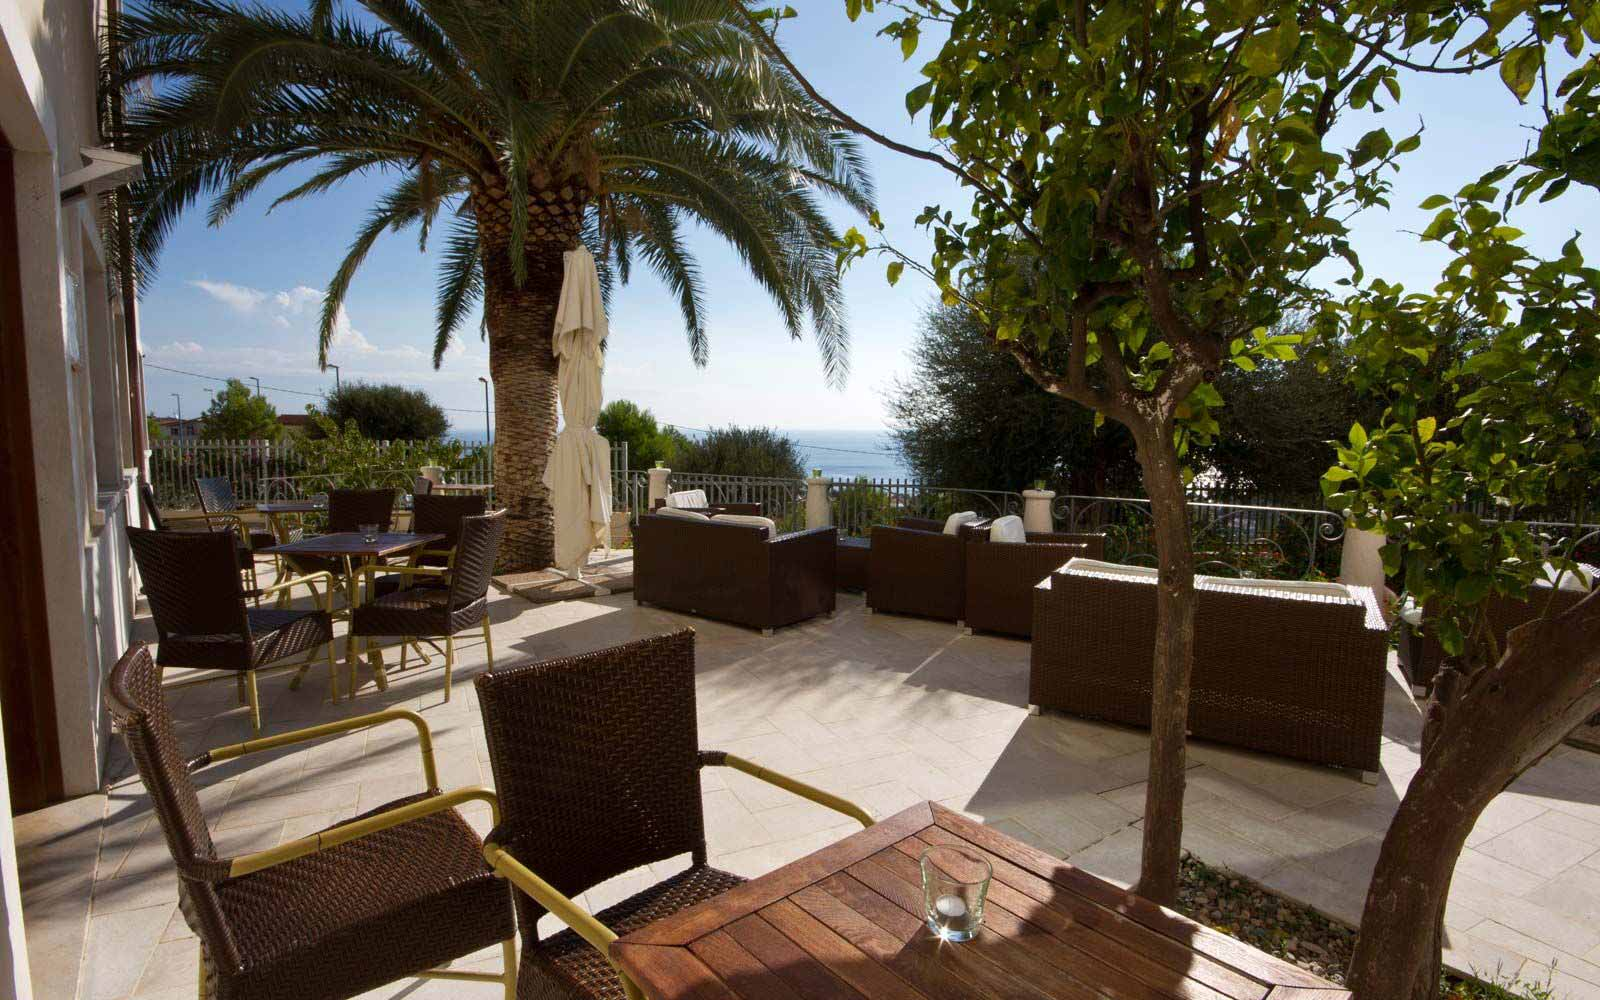 Sun terrace at Hotel Brancamaria